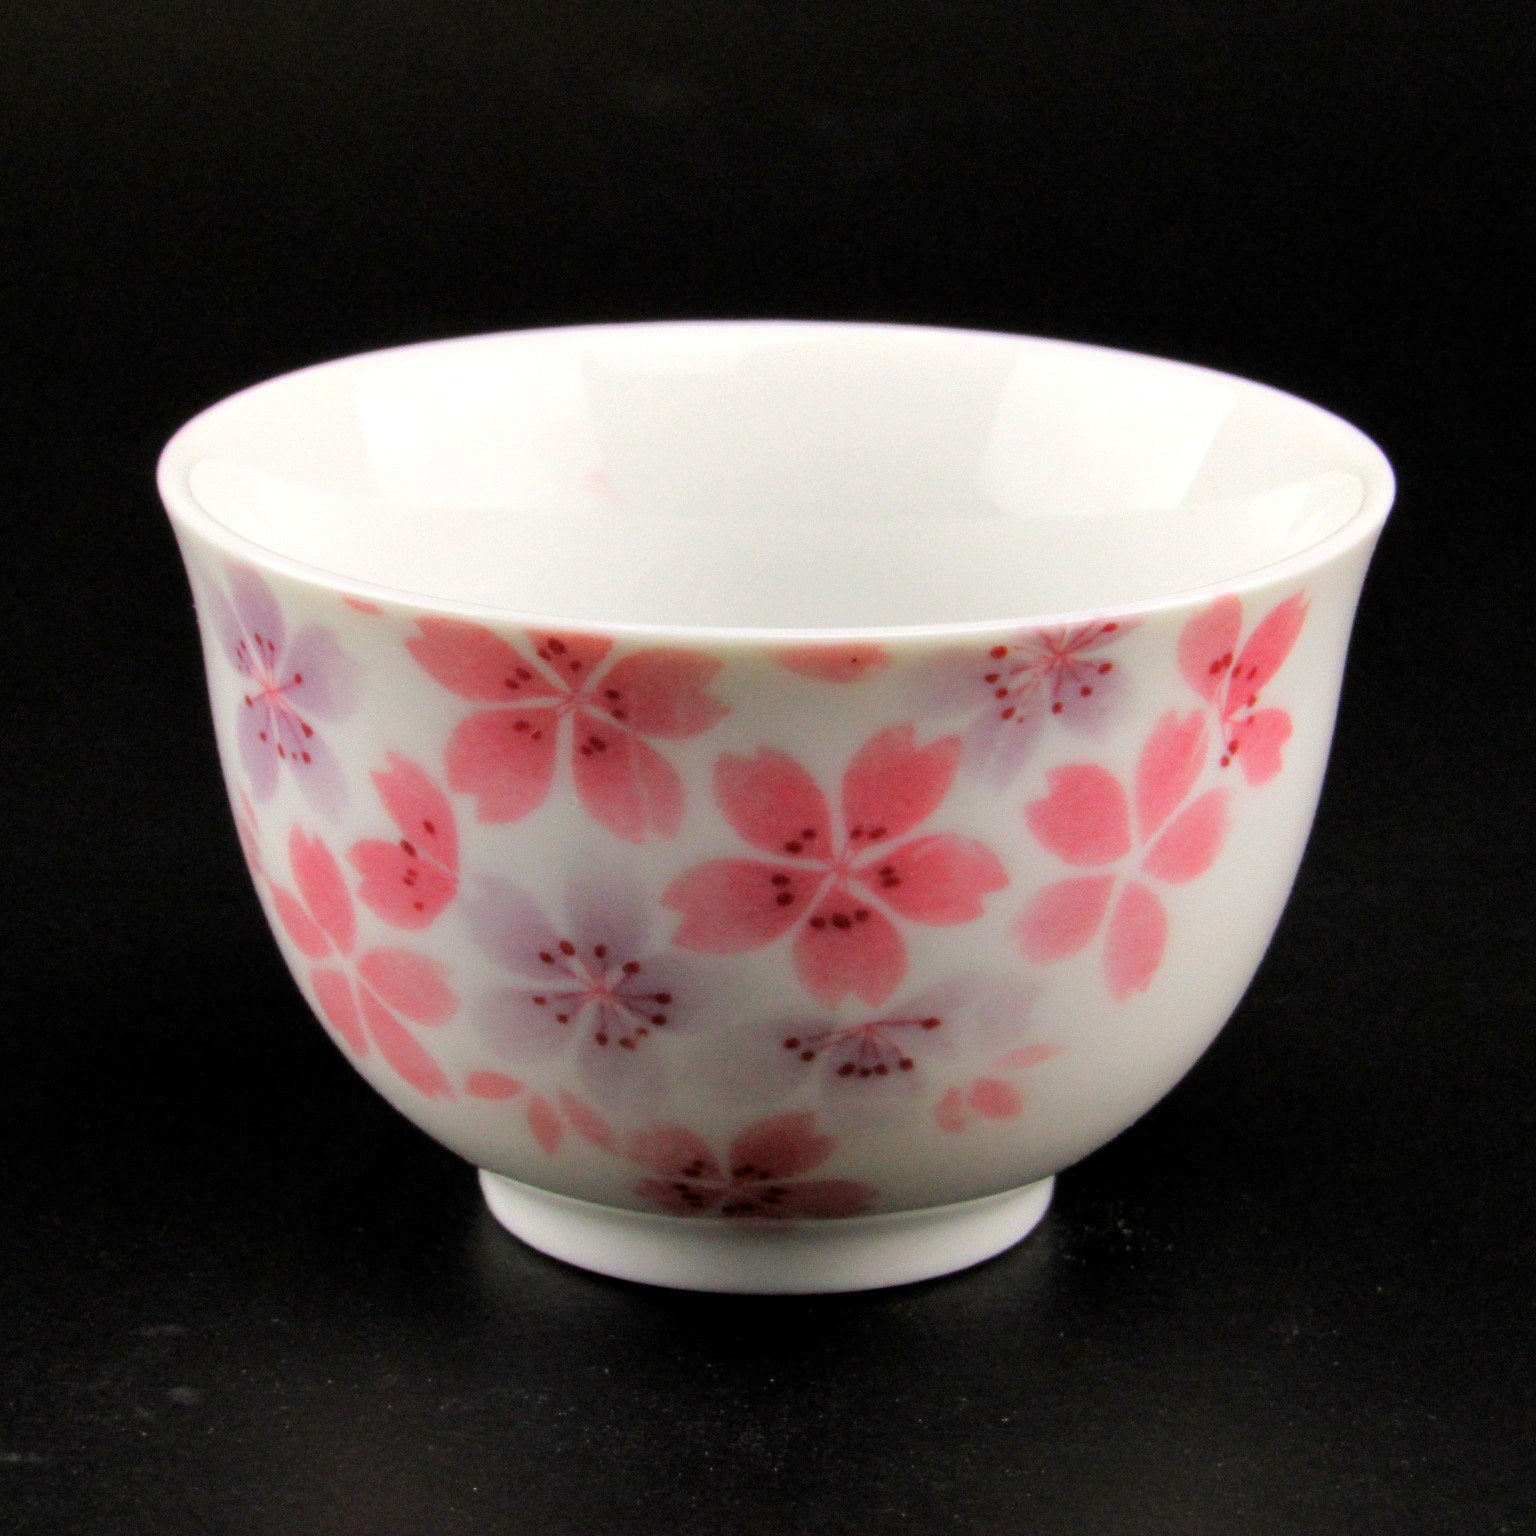 Minoyaki teacup - small flower